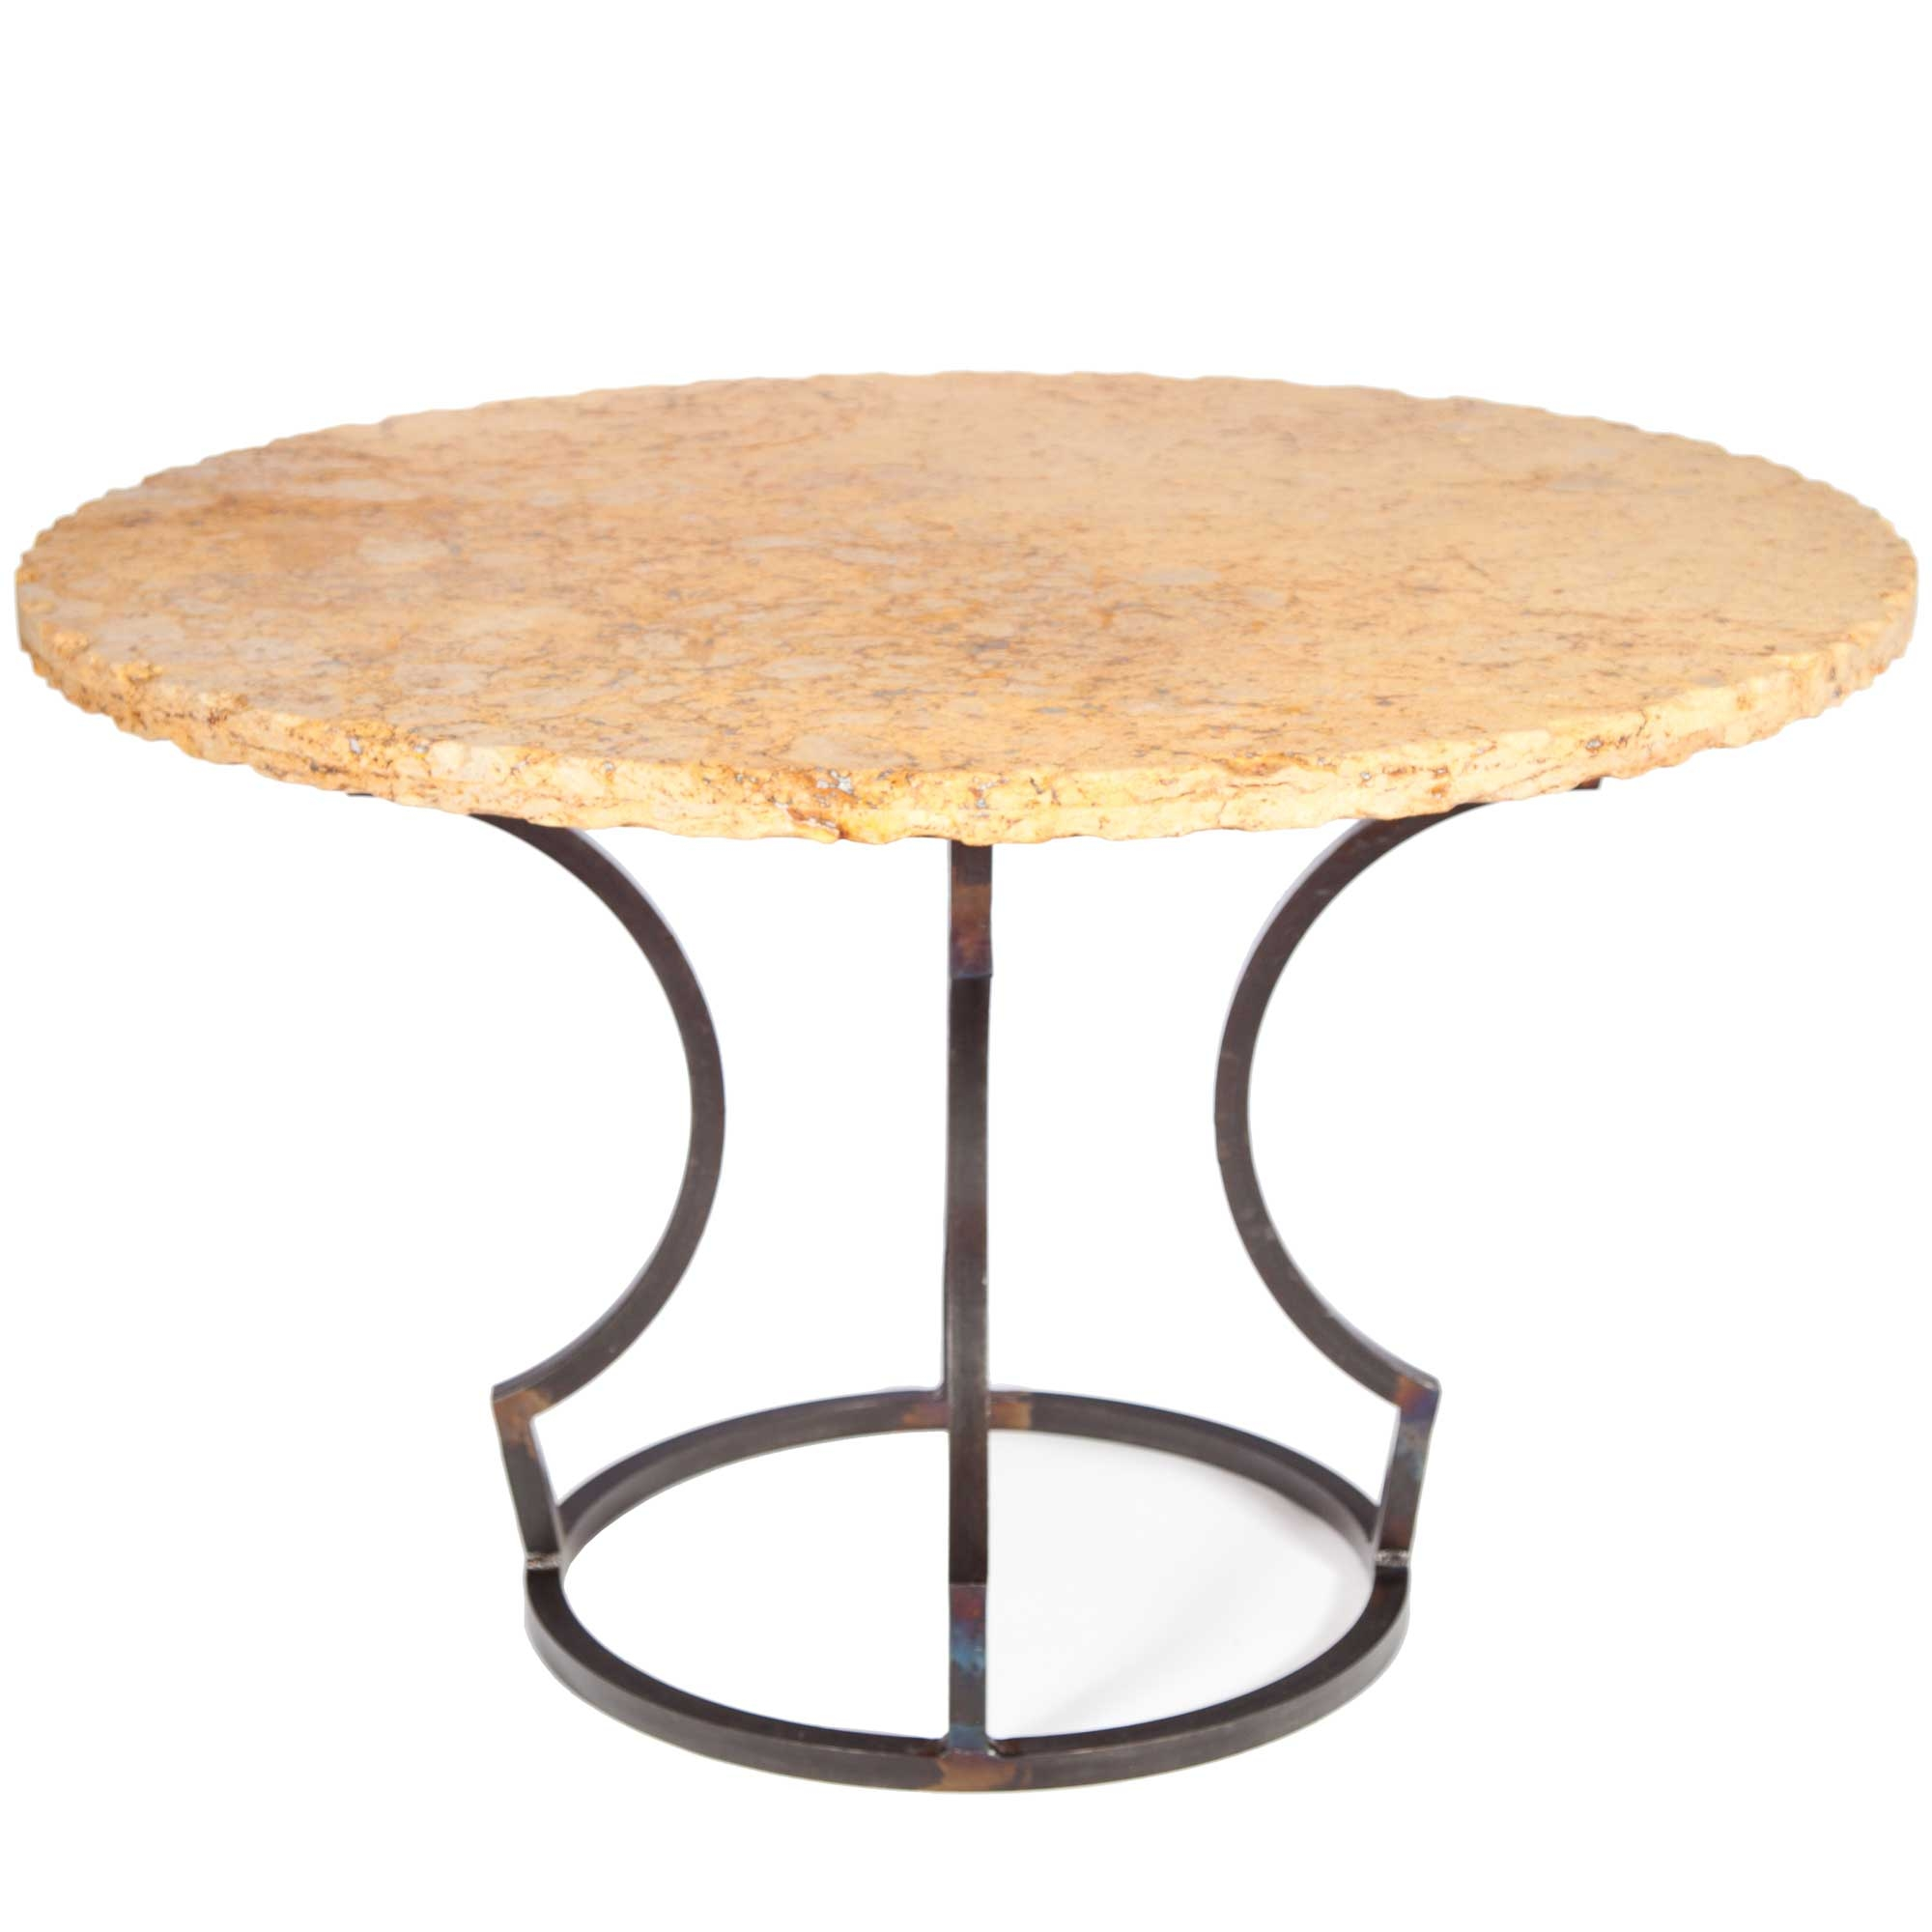 Round Marble Top Dining Table Charles Iron Dining Table With 48 Quot Round Marble Top